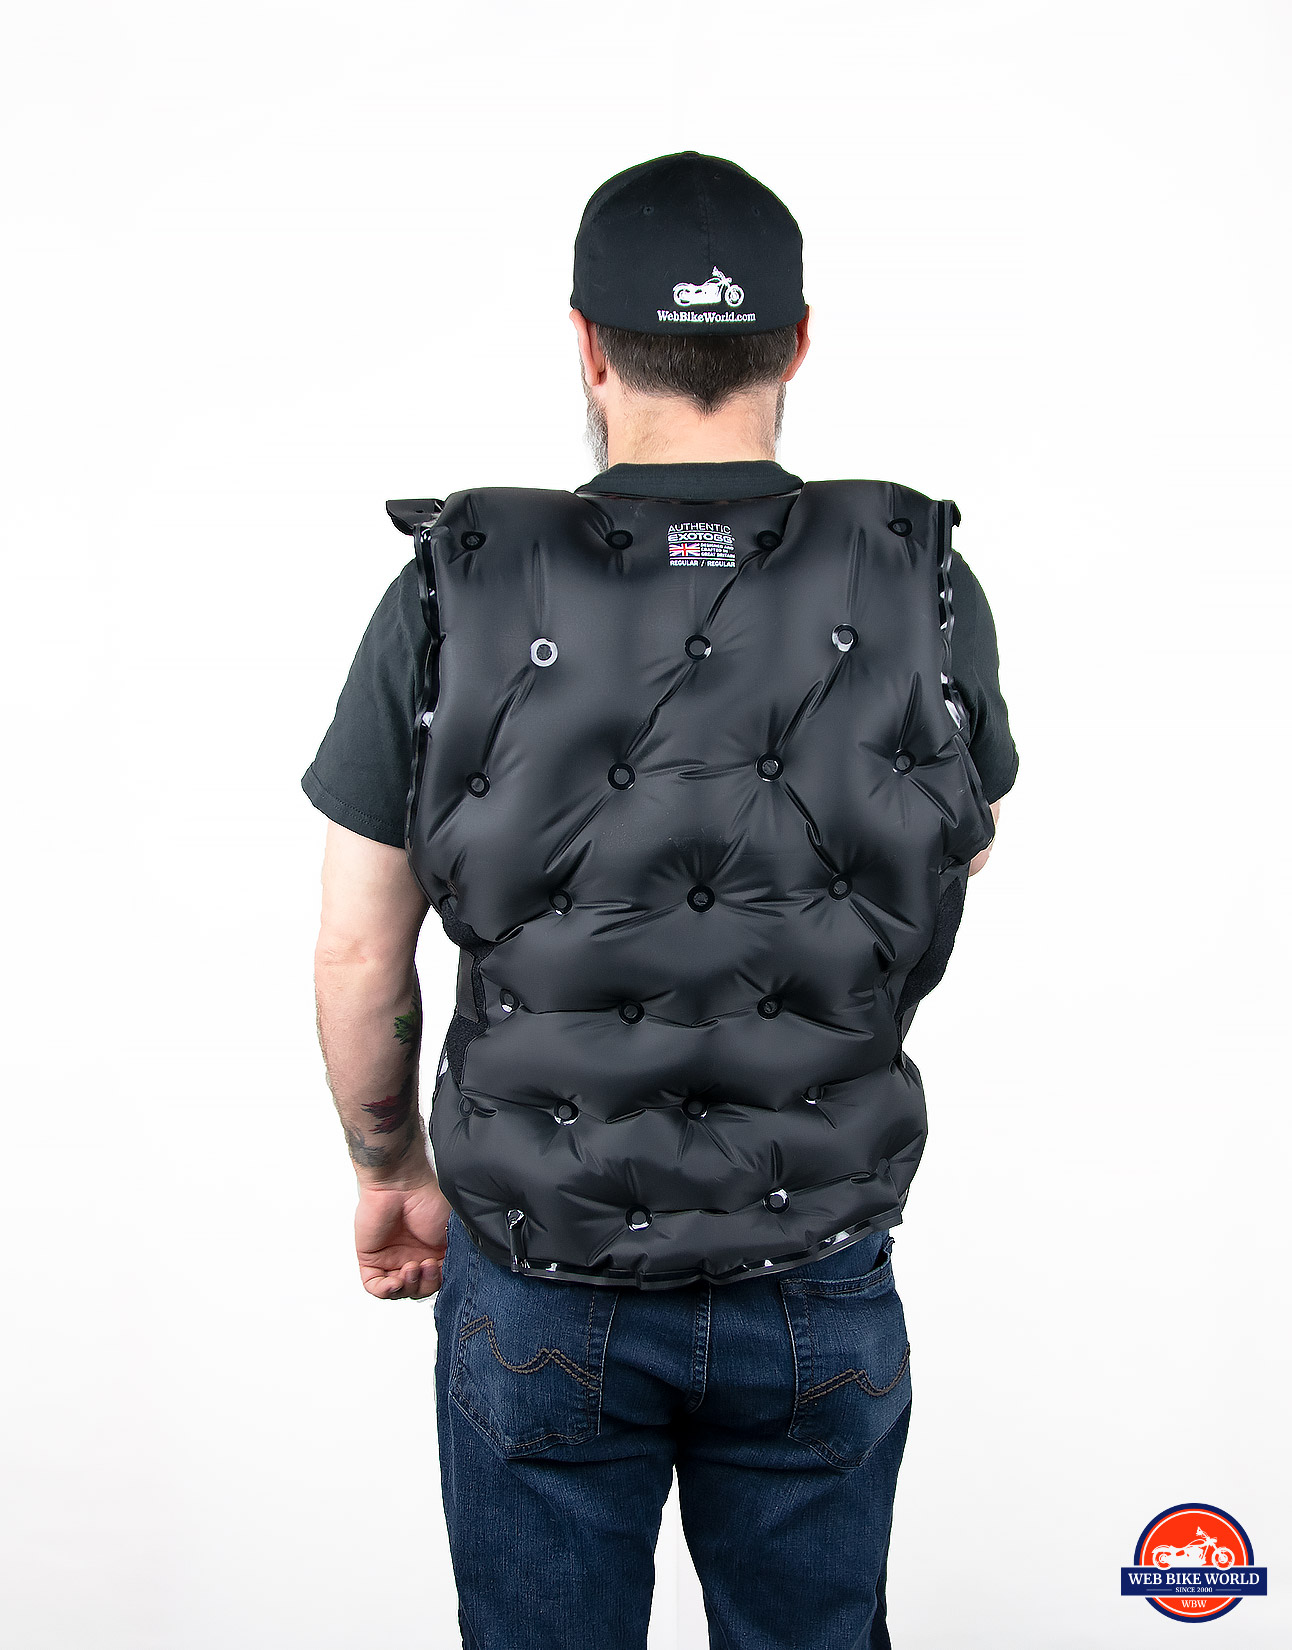 Exotogg Thermal Vest fully inflated.